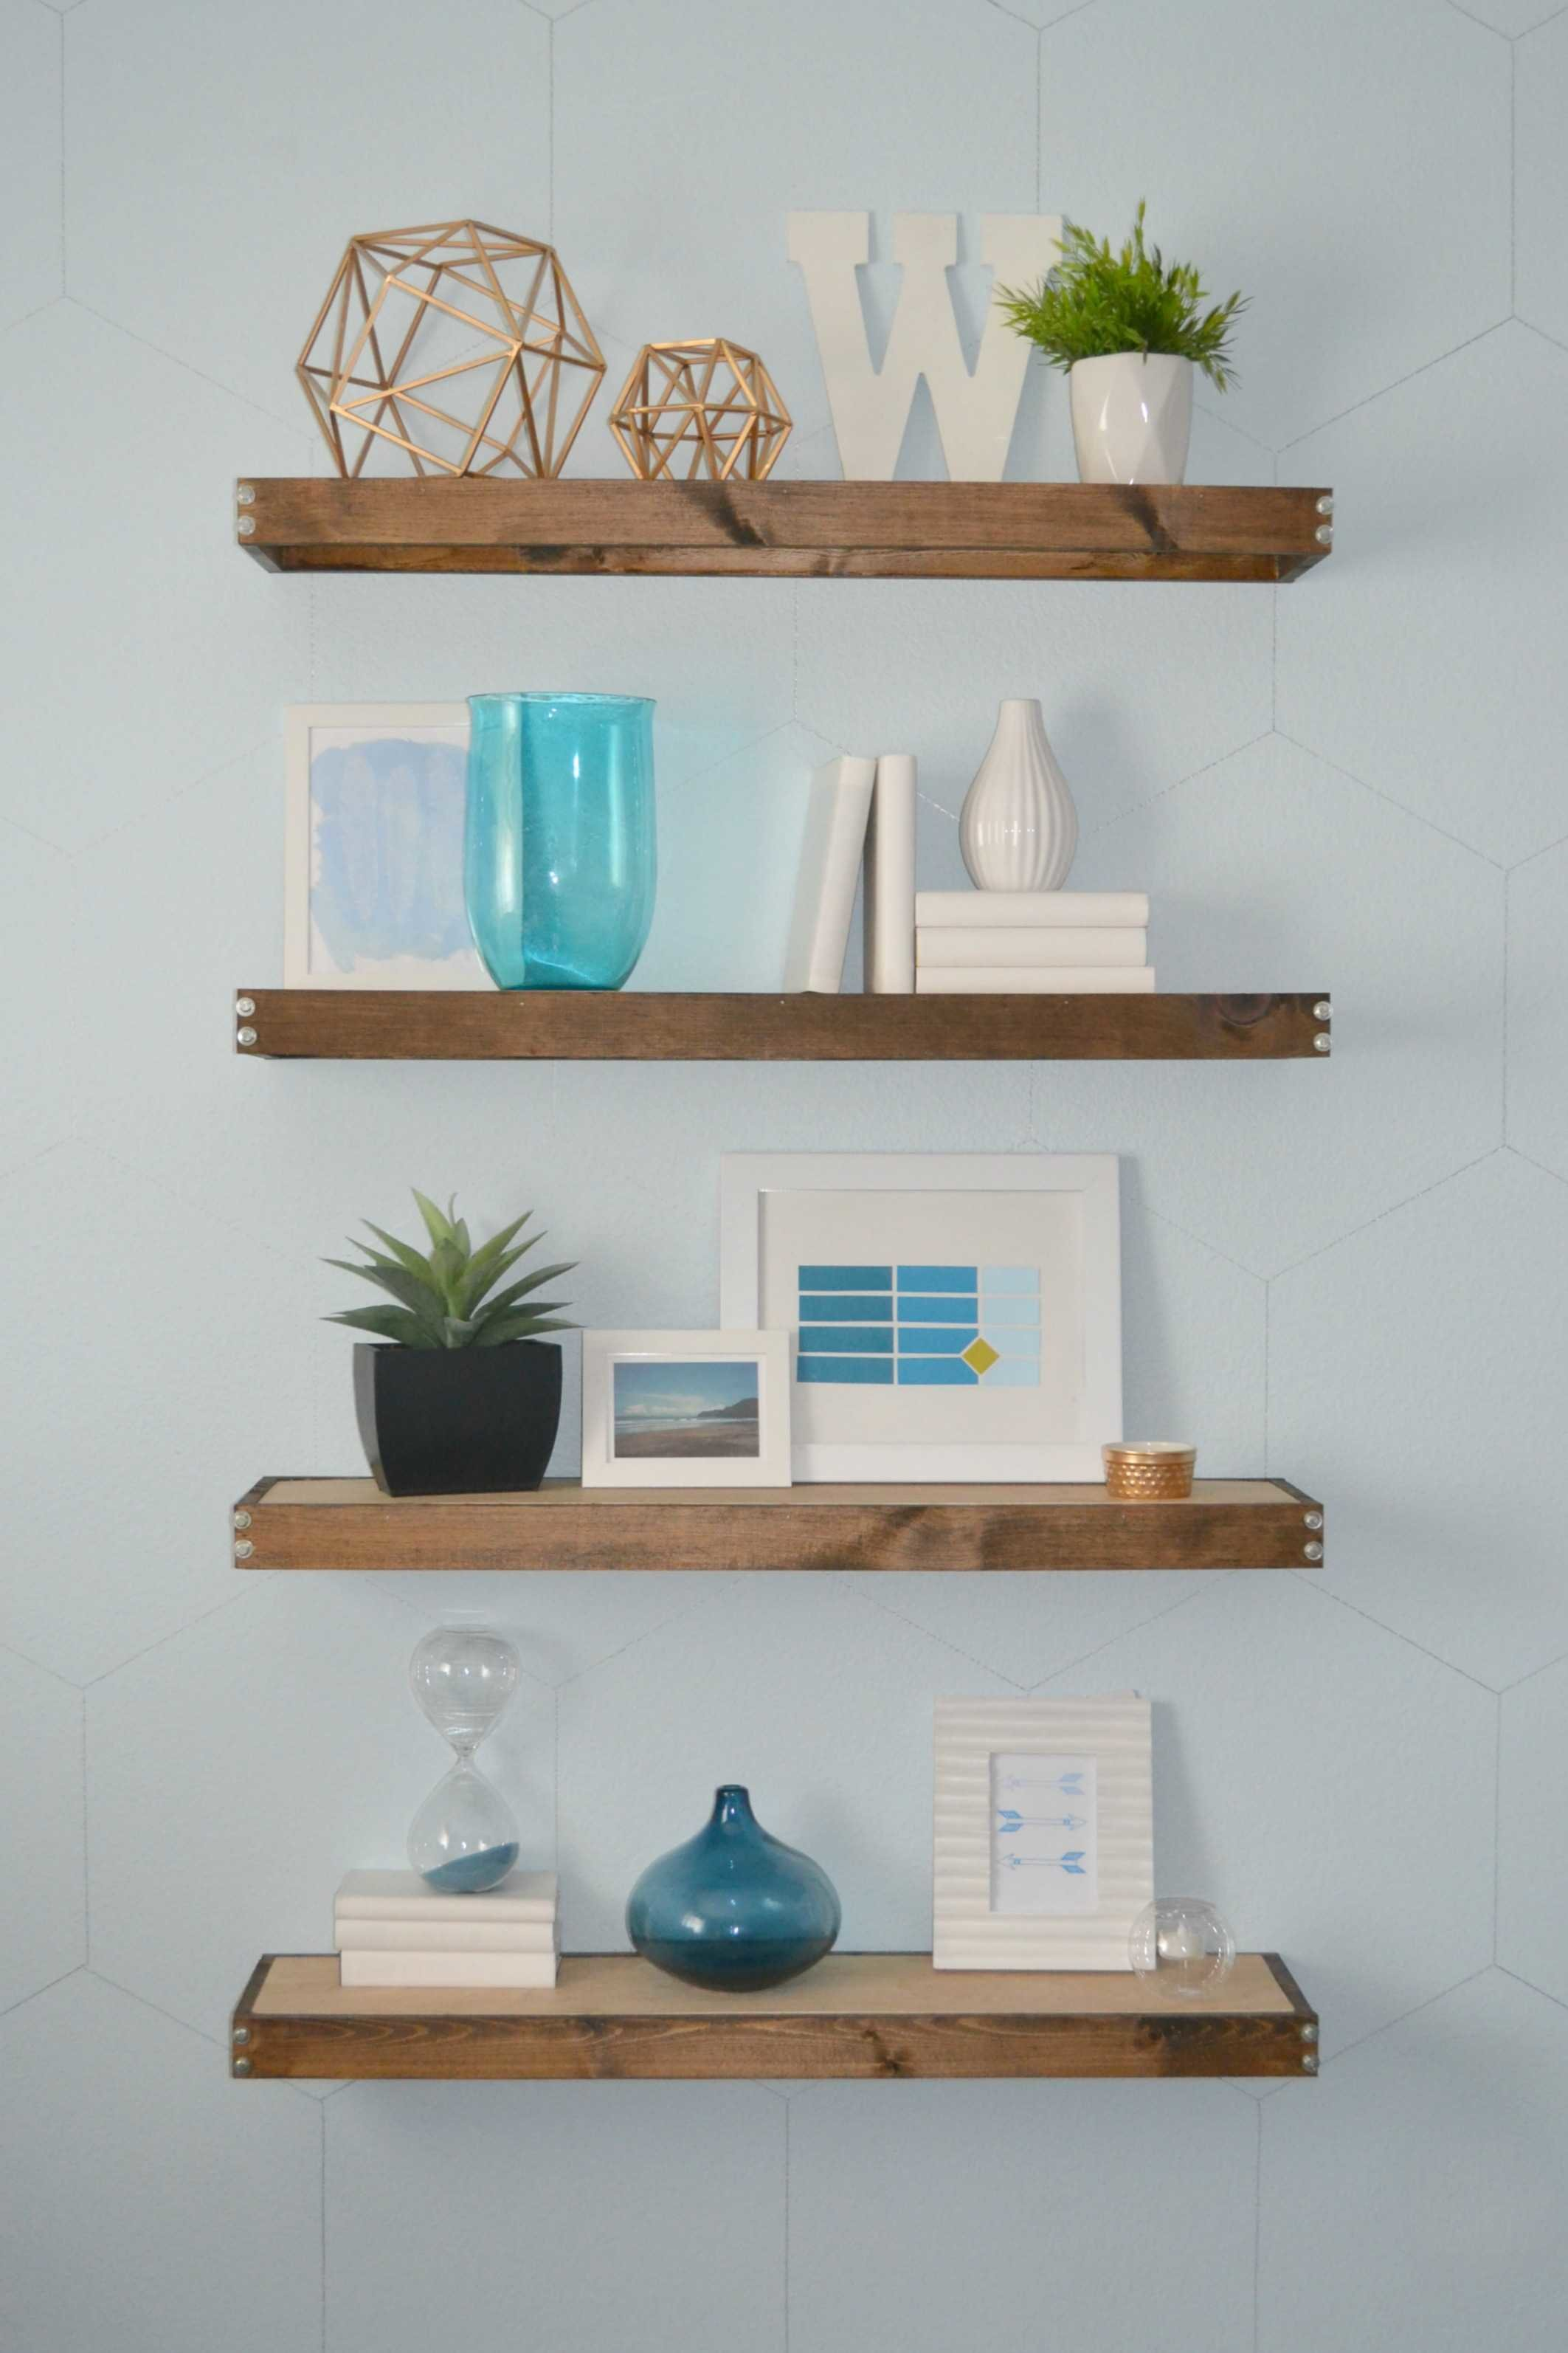 diy rustic modern floating shelves part one inch deep shelf kitchen island wall insert bath heart wickes corner argos dvd dresser drawers grey wood retail shelving tier wooden